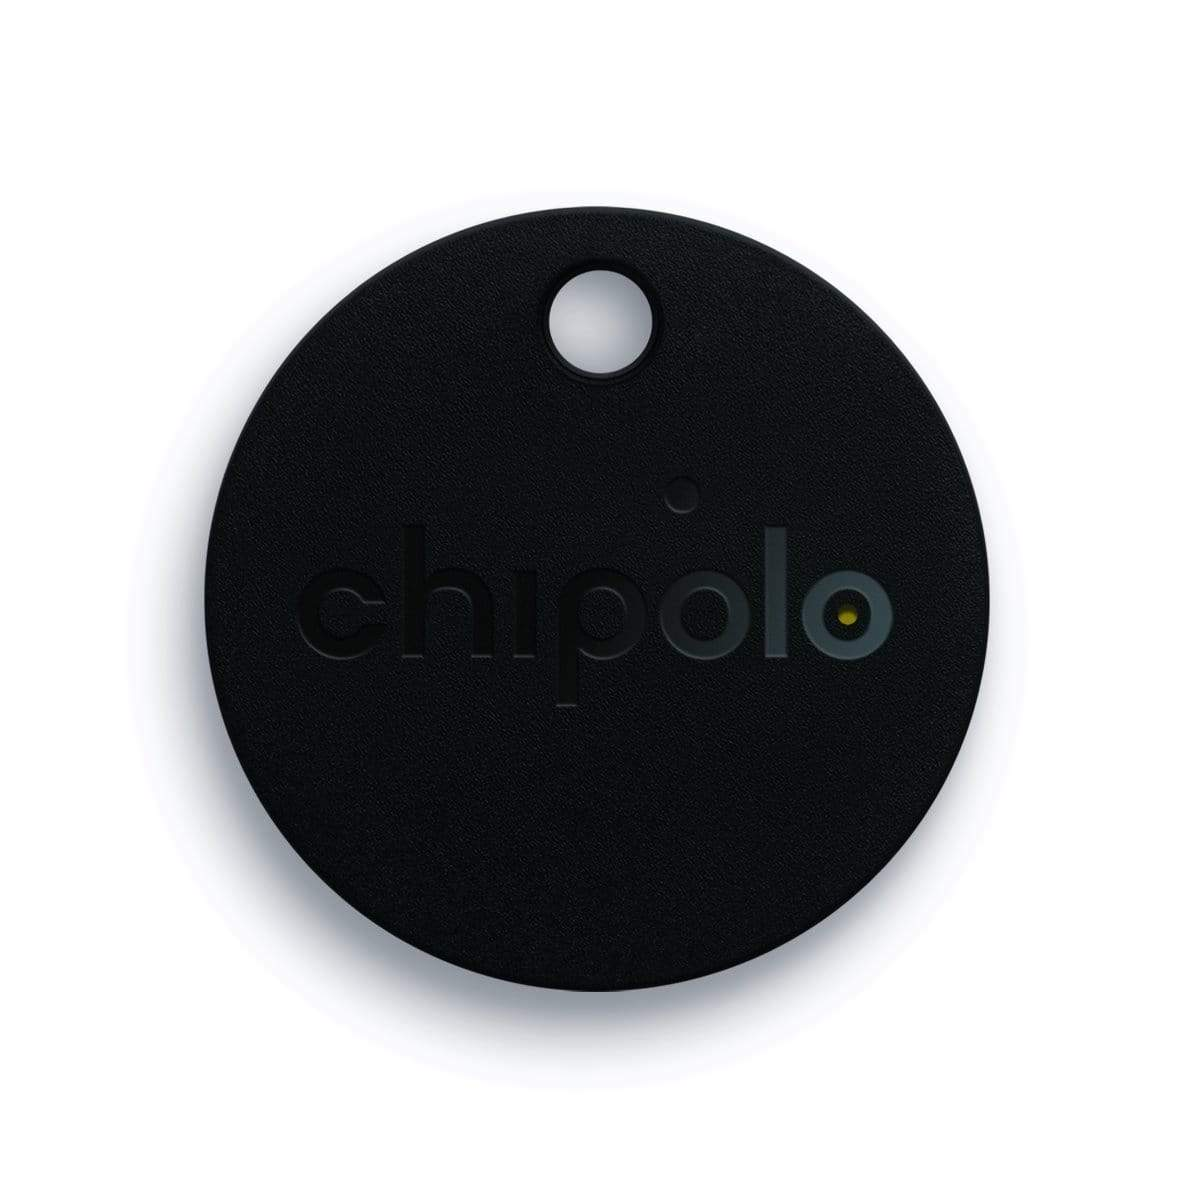 Ilco Chipolo Bluetooth Key Finder (Black)